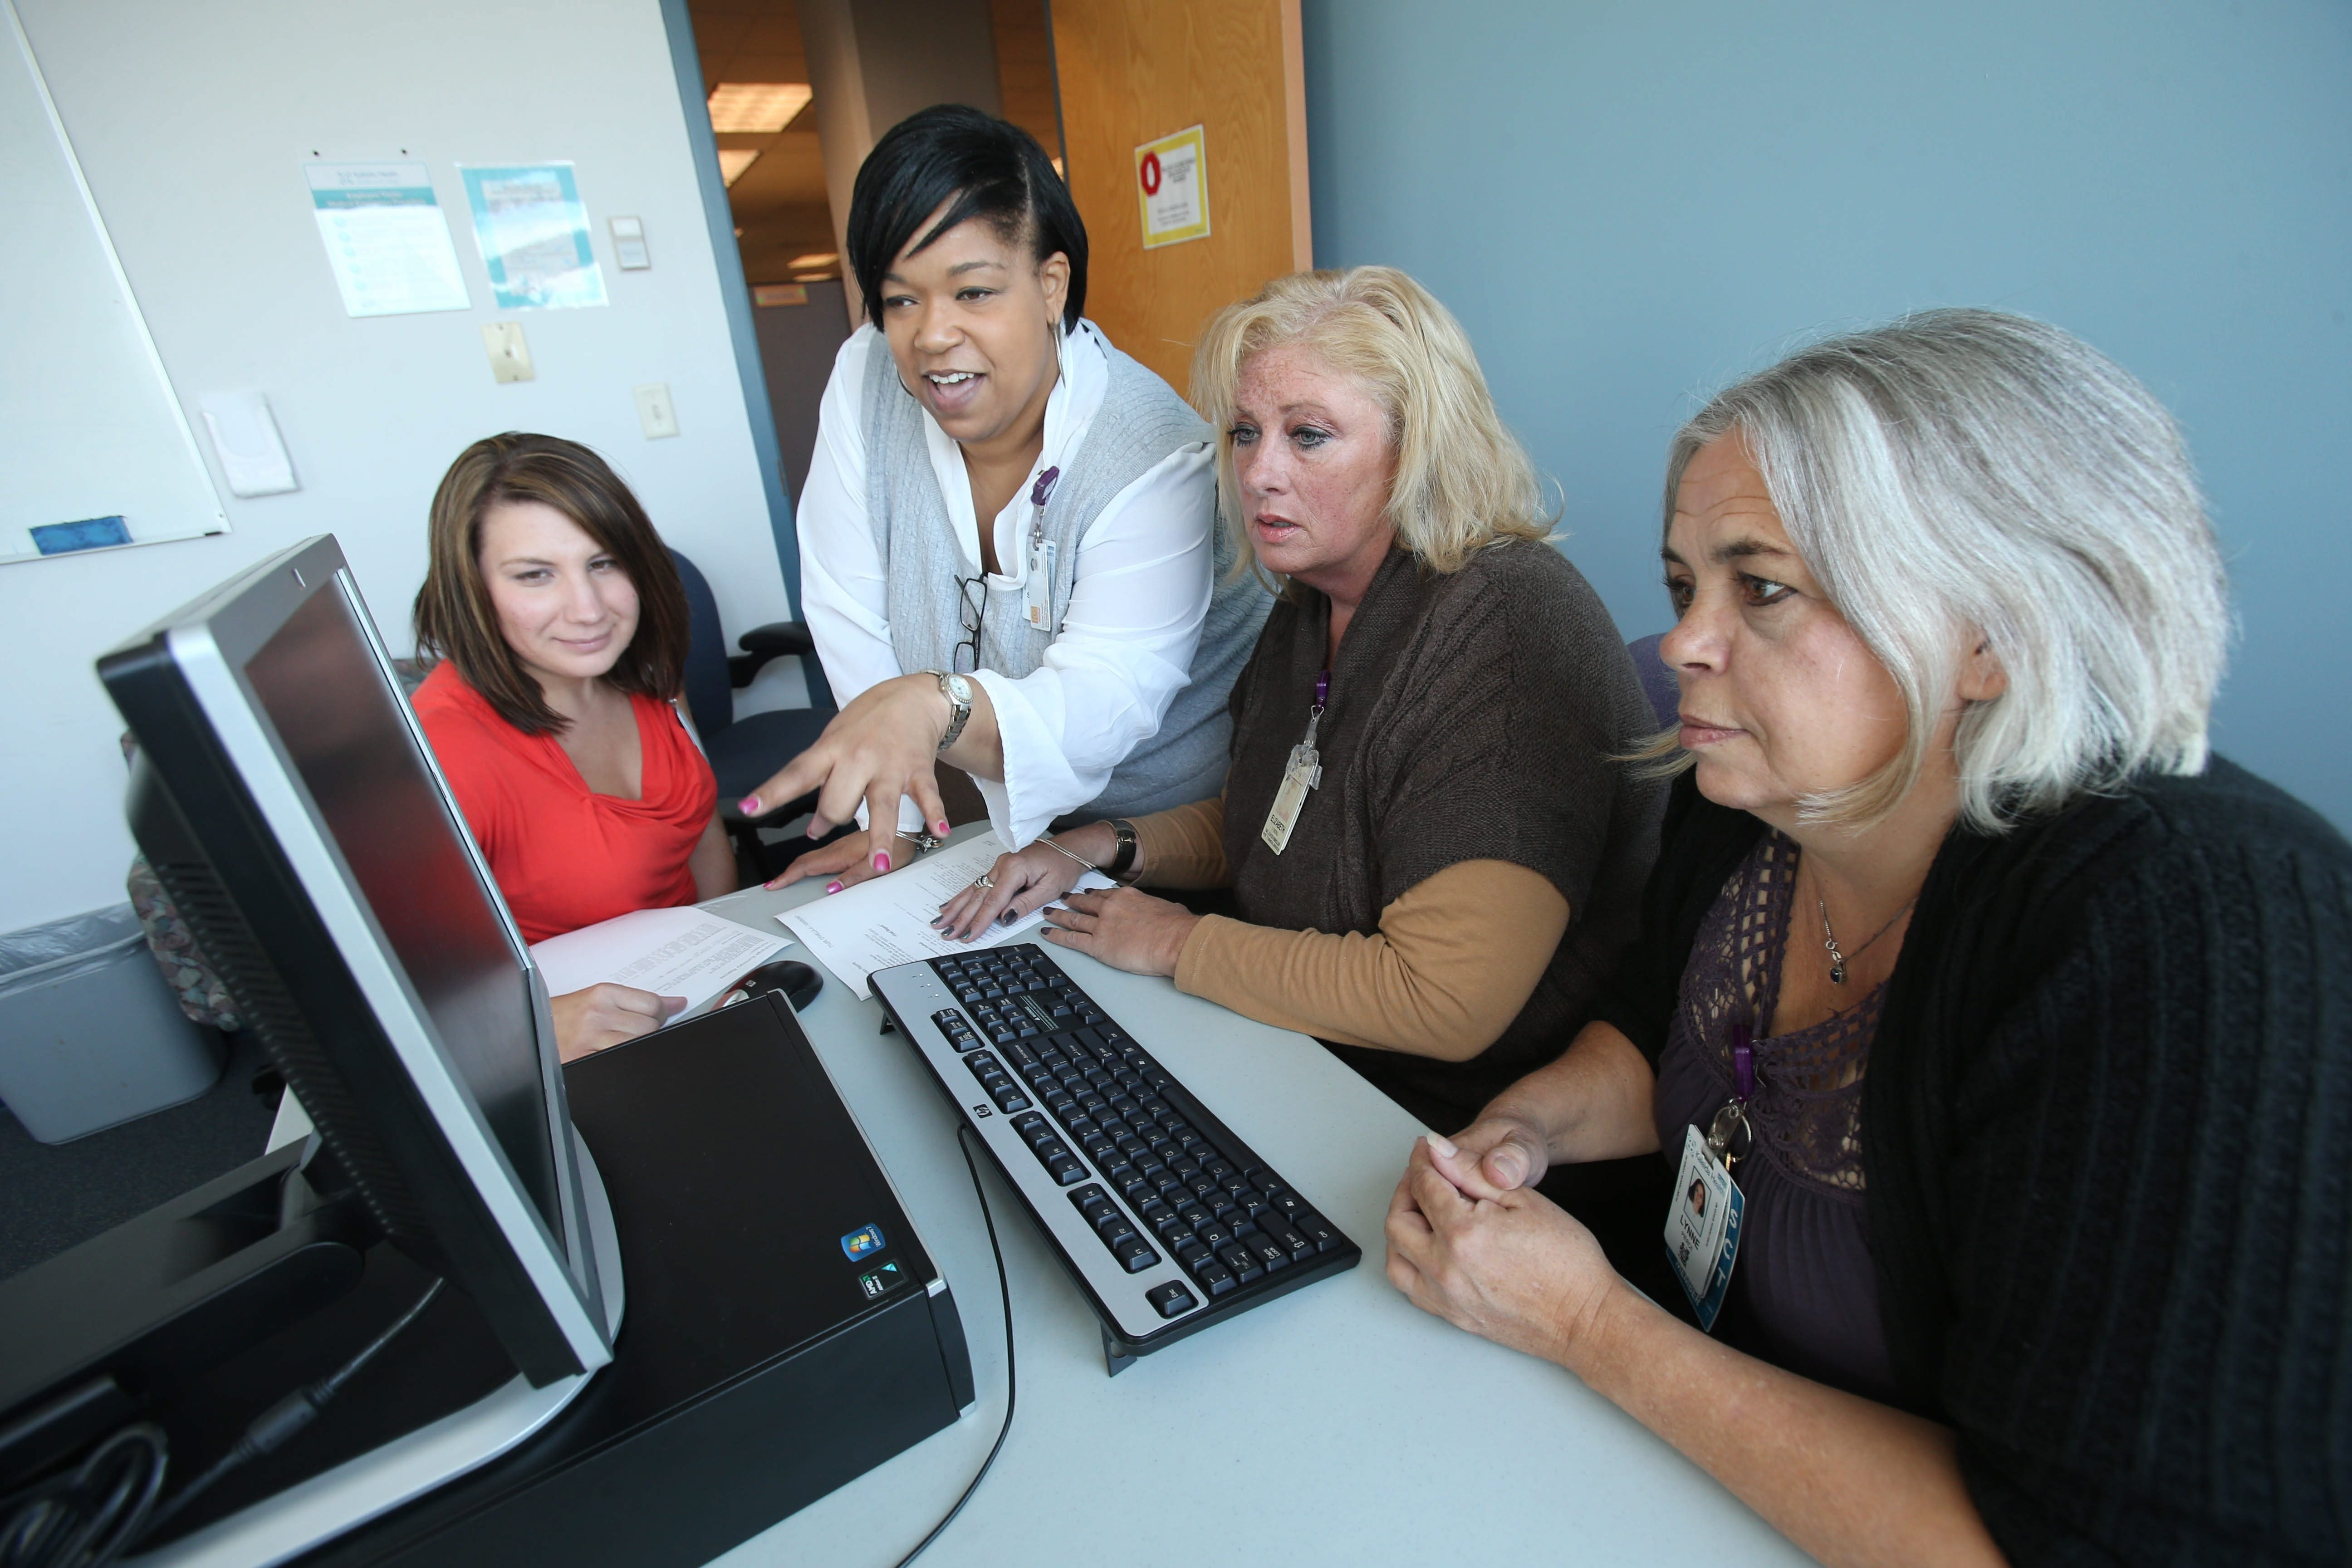 From left, Rachael Sinicki, patient representative, Simmone Washington, manager of financial counseling services, Elizabeth Driscoll, navigator, and Lynne Pierce, patient representative, take part in a training session Friday at the Larkin at Exchange Building.